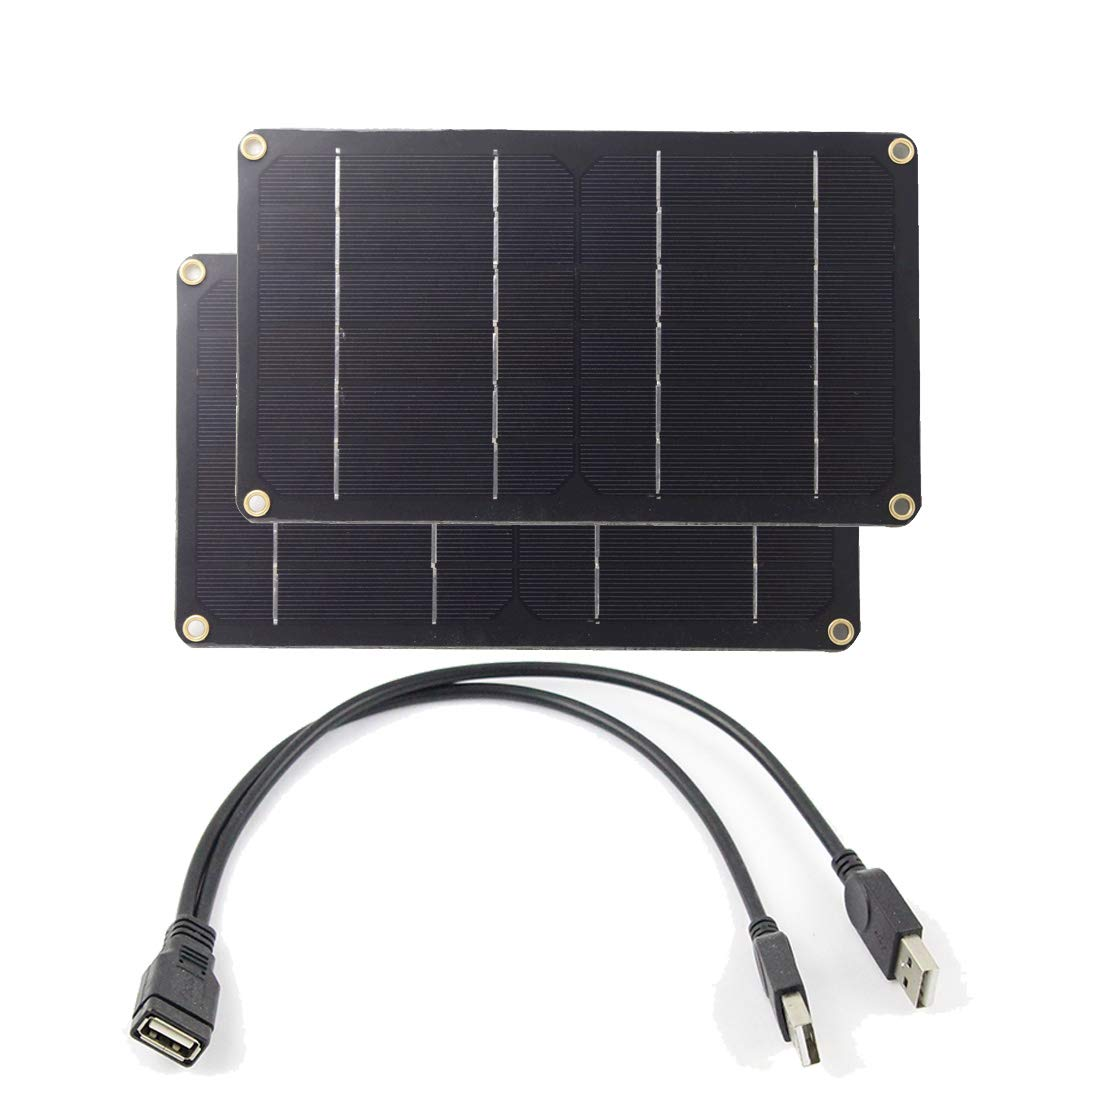 SHIERLING 2pcs 6V 6W 1A Semi Flexible Solar Panel Monocrystalline Silicon Module Cell DIY Kit Outdoor Charger Black 2 in 1 USB Cable for Car Recorder Mobile Phone Camping Hiking Travel Power Charging